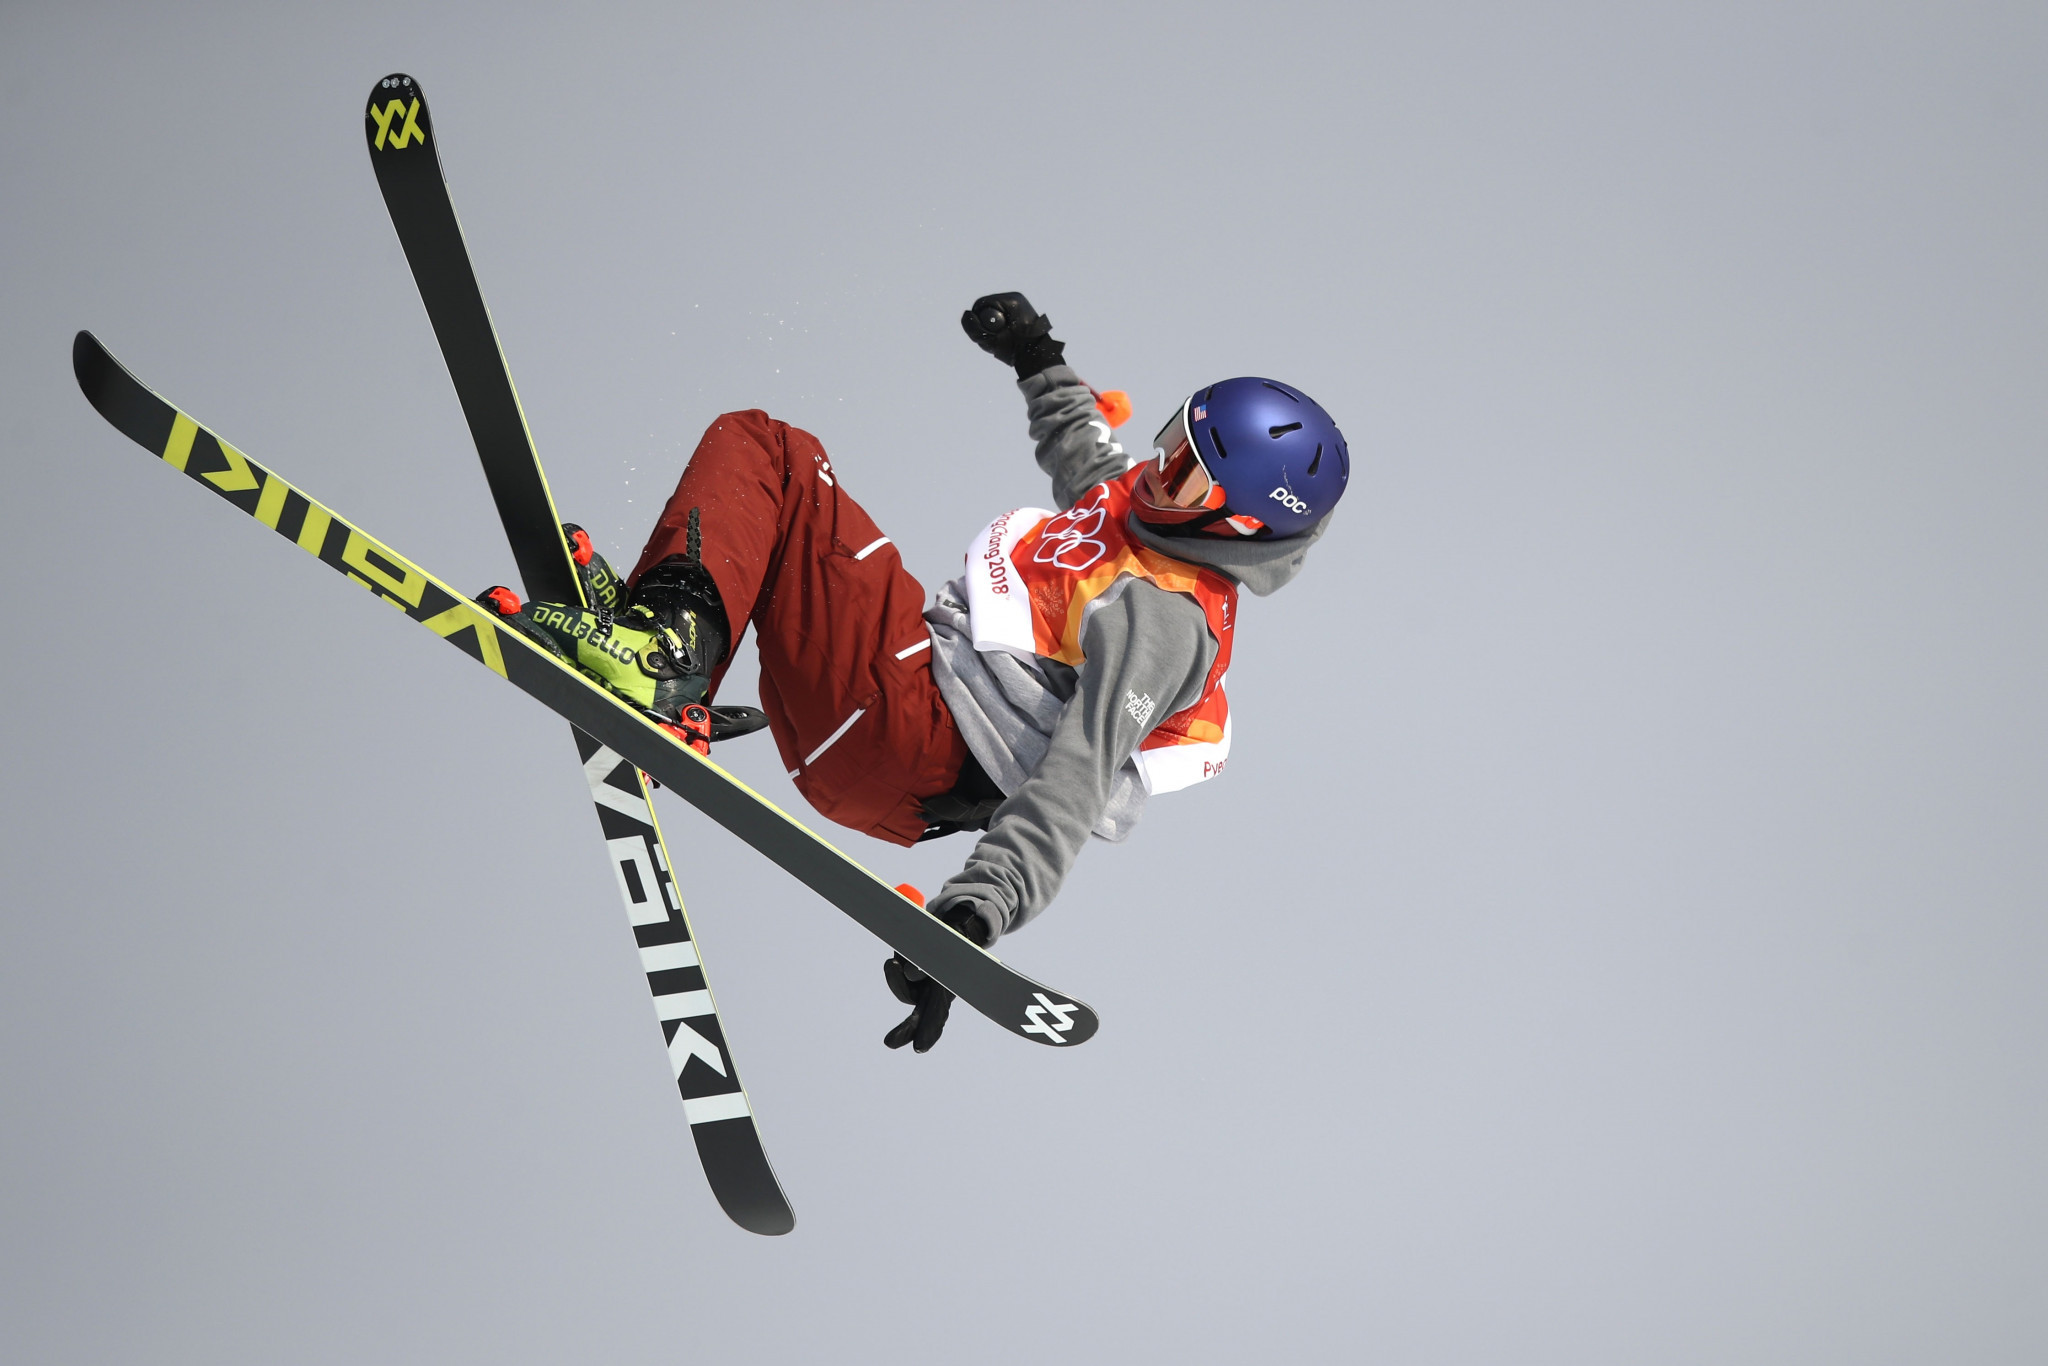 Oystein Braaten Claims Gold in Ski Slopestyle